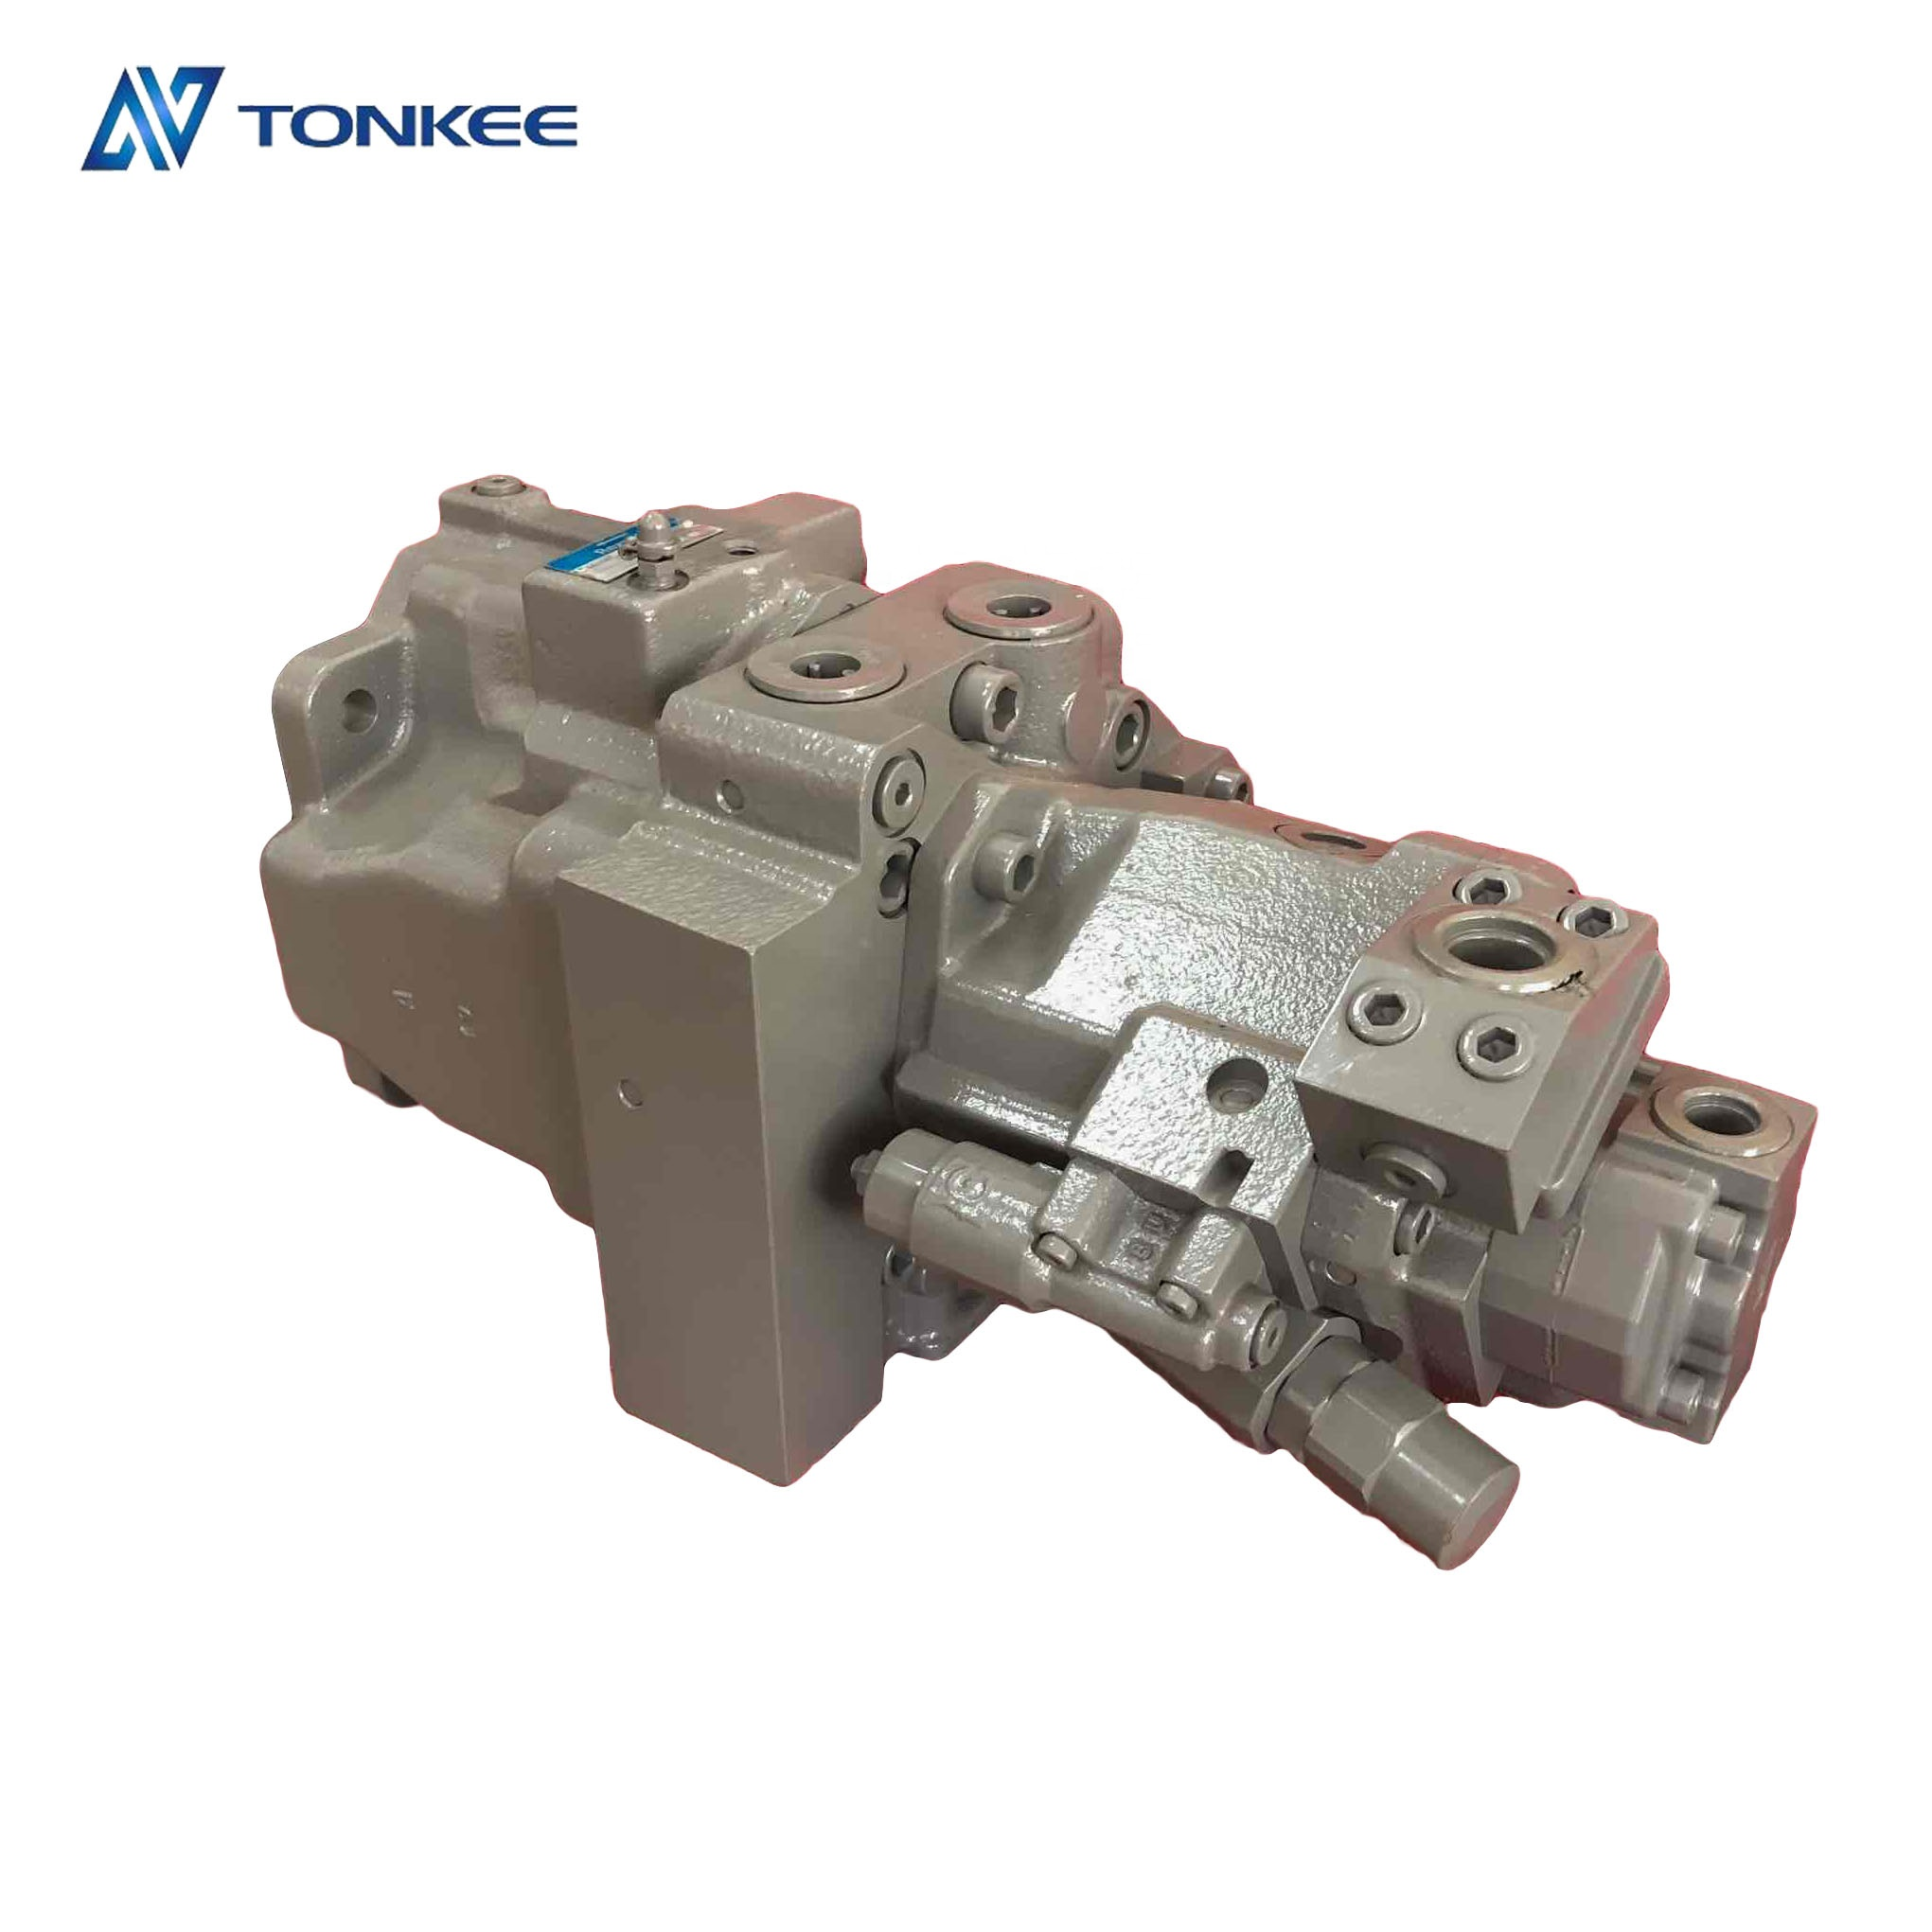 AP2D36LV3RS6-909-4 hydraulic piston pump AP2D36LV3RS6 AP2D36 excavator hydraulic main pump for HITACHI genuine REXROTH NEW